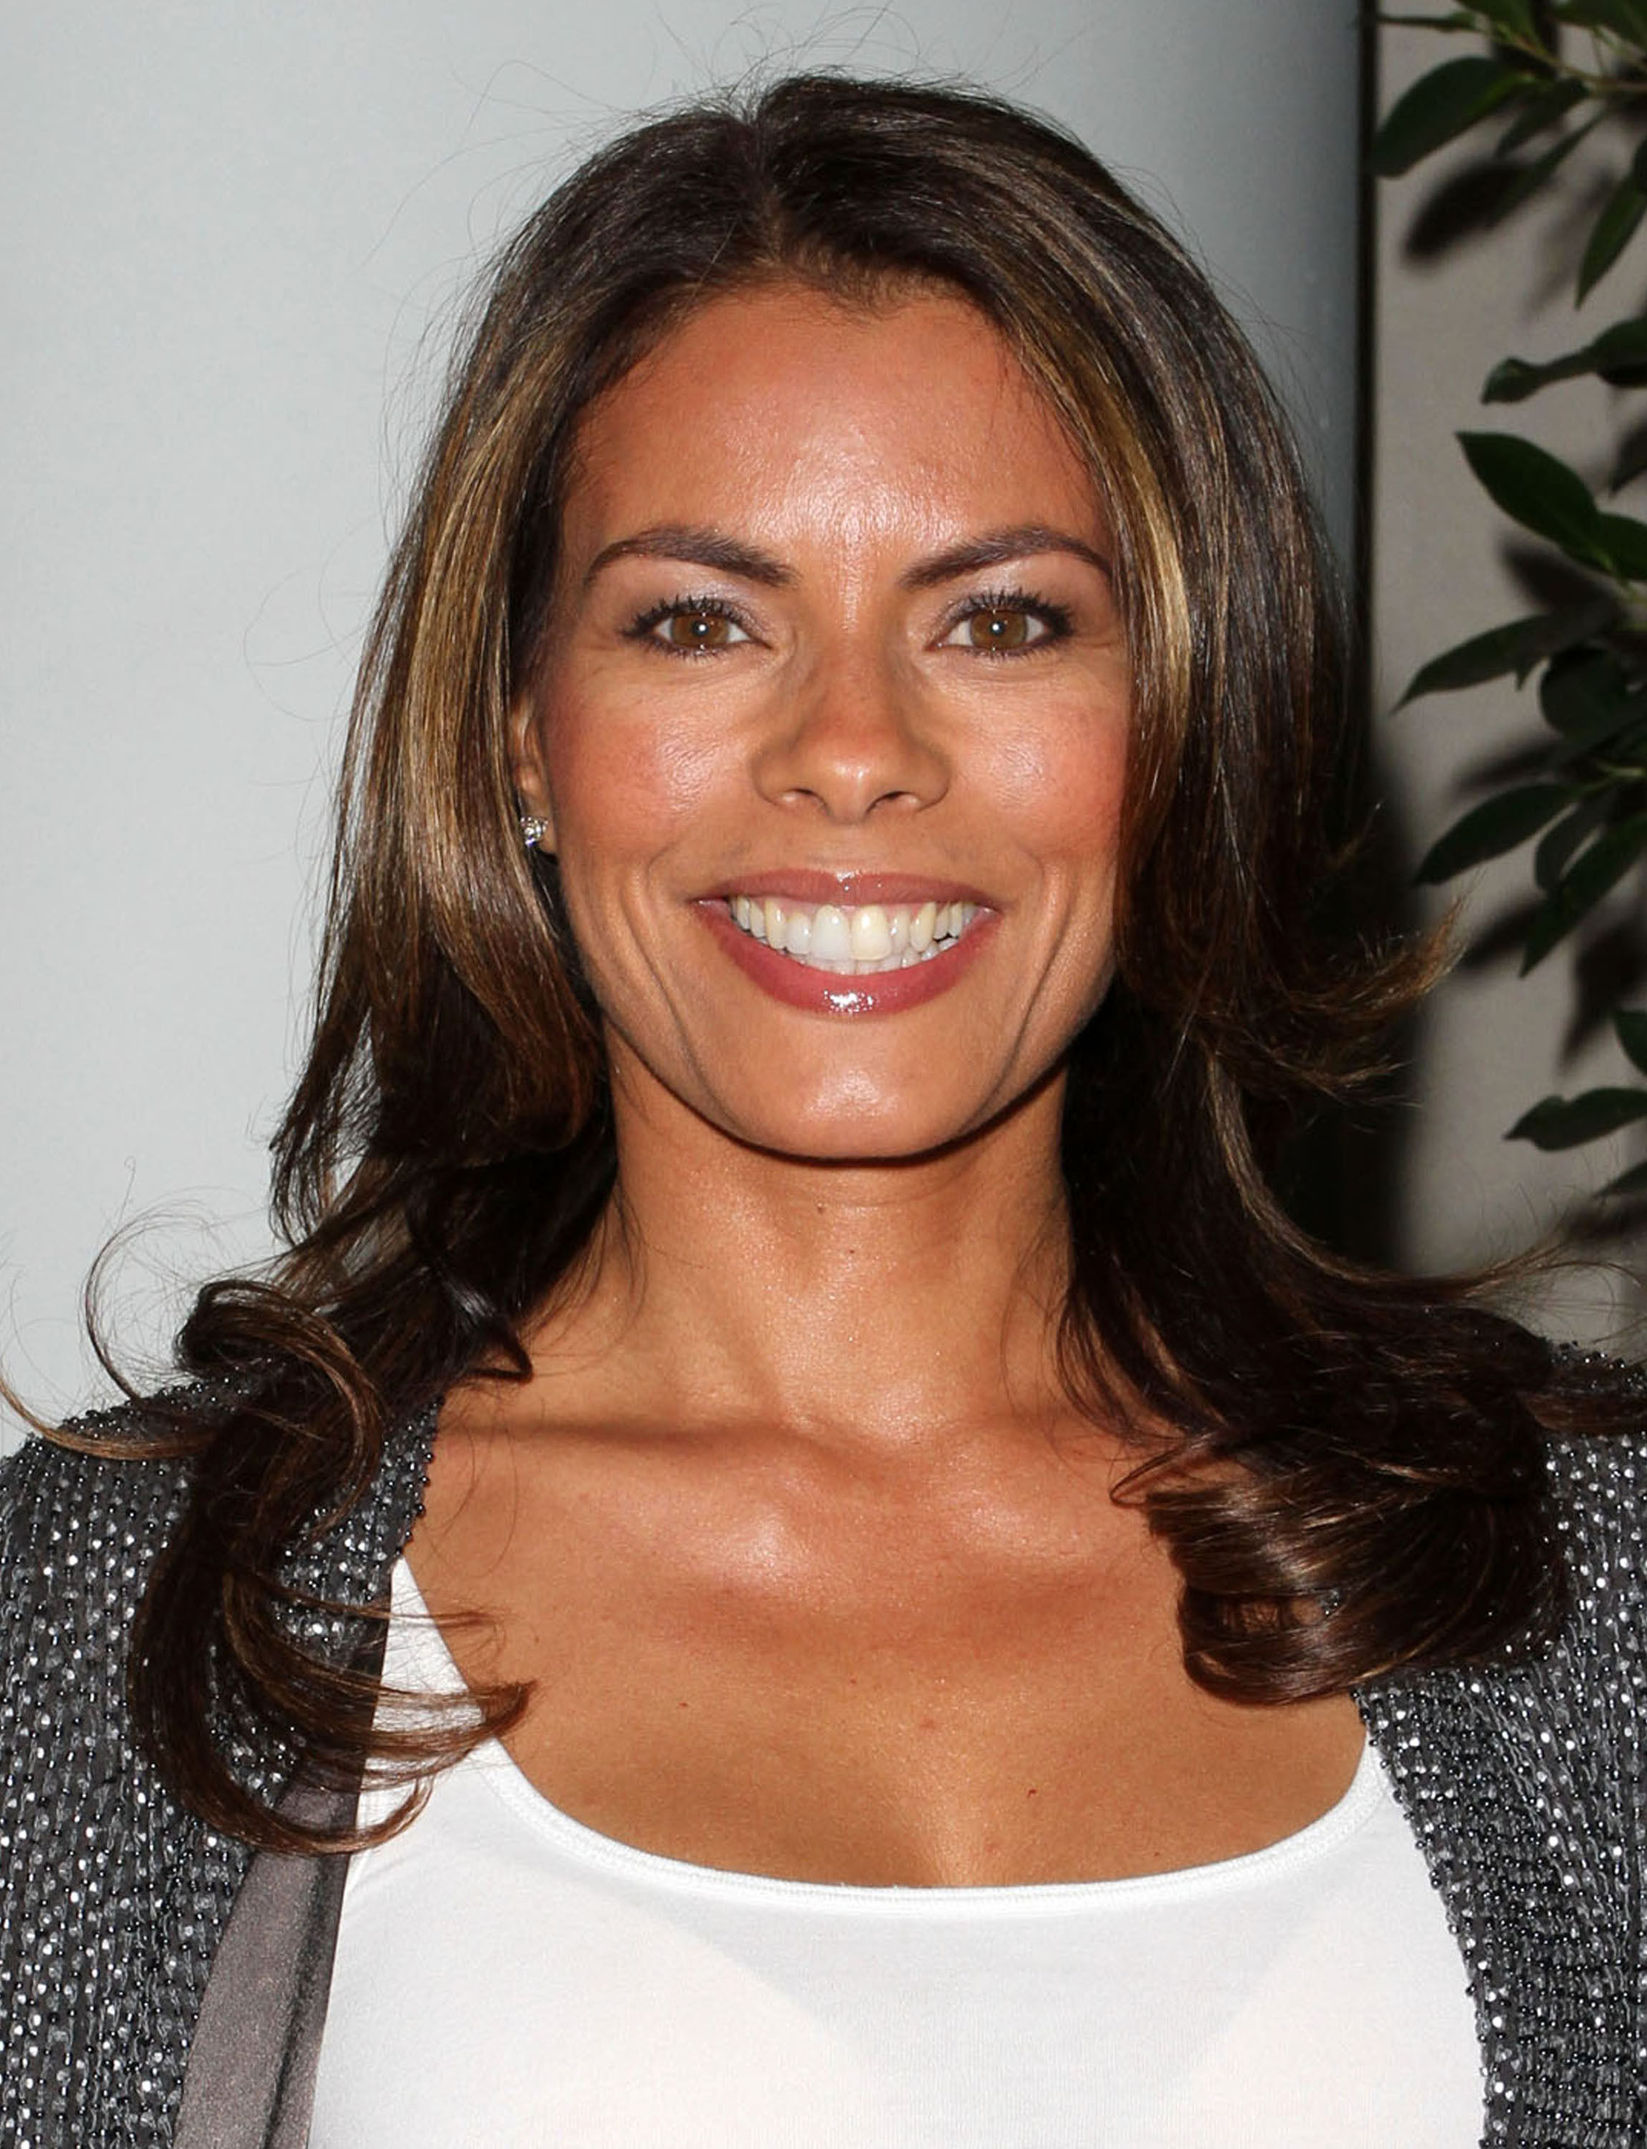 lisa vidal star treklisa vidal actress, lisa vidal star trek, lisa vidal instagram, lisa vidal, лиза видал, lisa vidal wiki, lisa vidal husband, lisa vidal net worth, lisa vidal age, lisa vidal ethnicity, lisa vidal hot, lisa vidal facebook, lisa vidal sisters, lisa vidal measurements, lisa vidal imdb, lisa vidal body, lisa vidal twitter, lisa vidal height